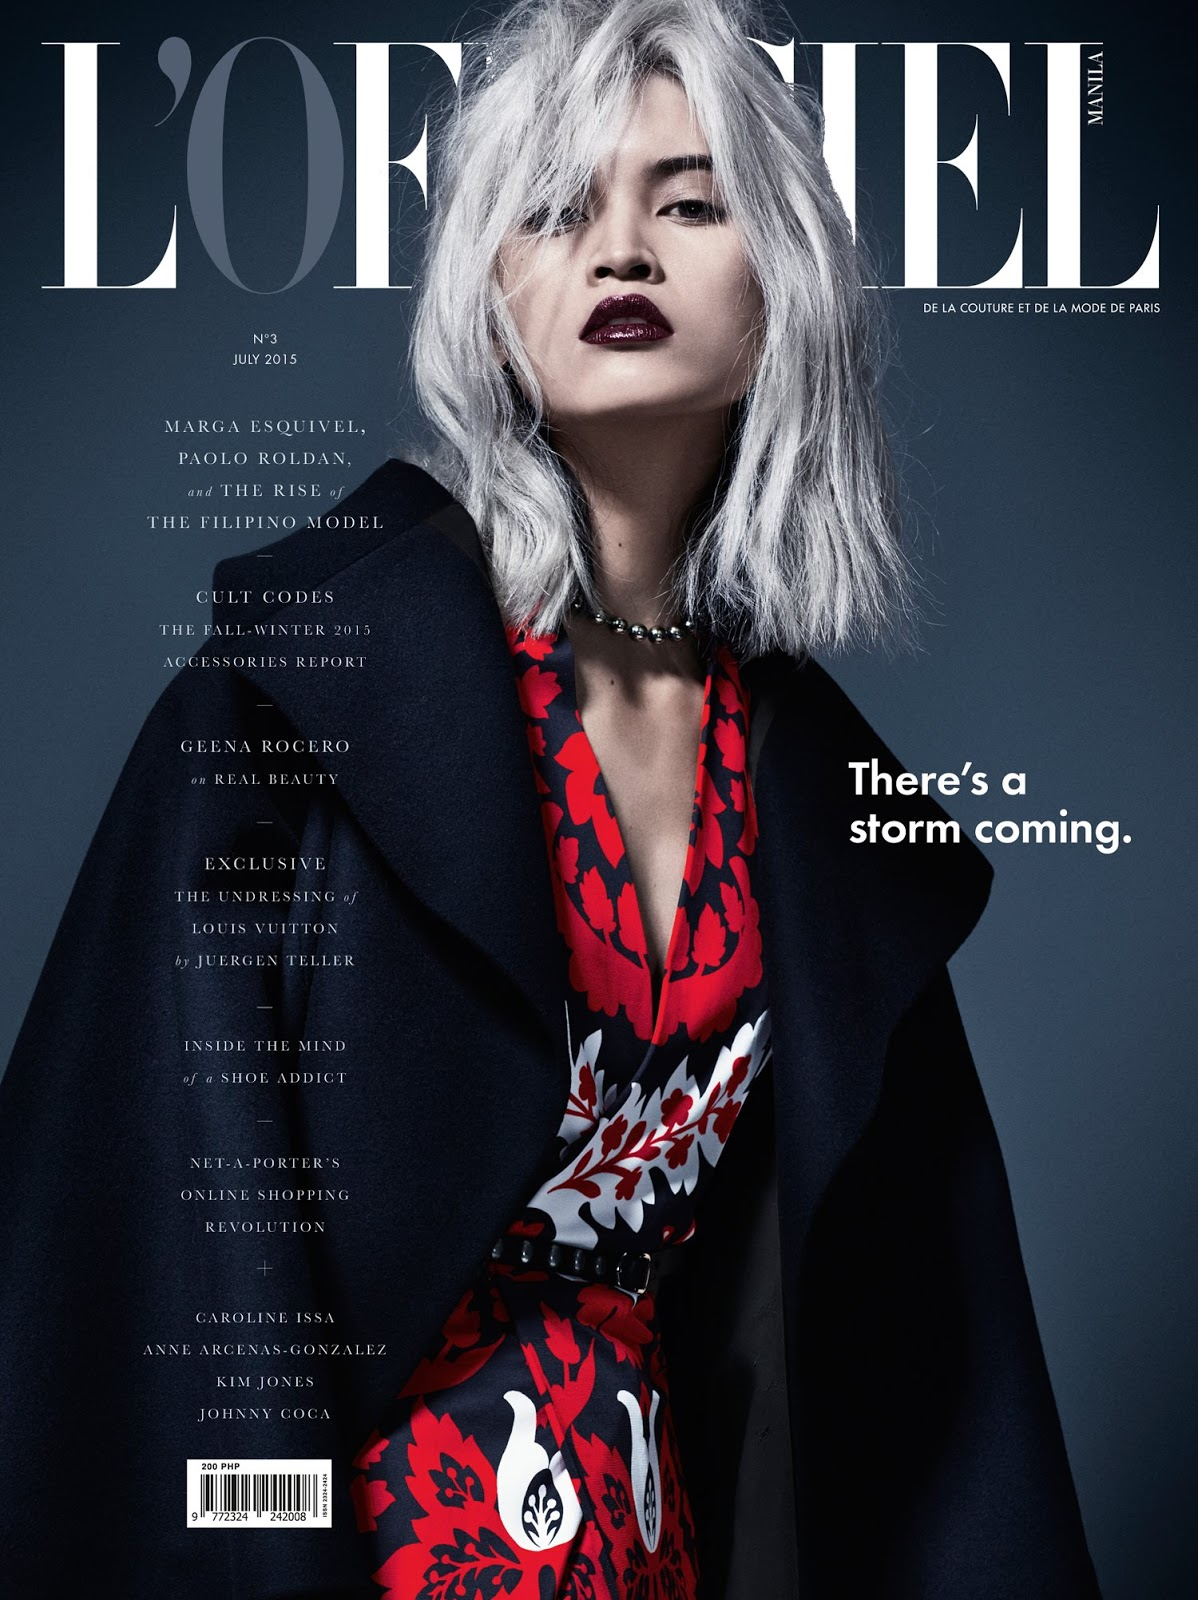 LOfficiel Manila July 2015 over Marga Esquivel by Markus Ziegler